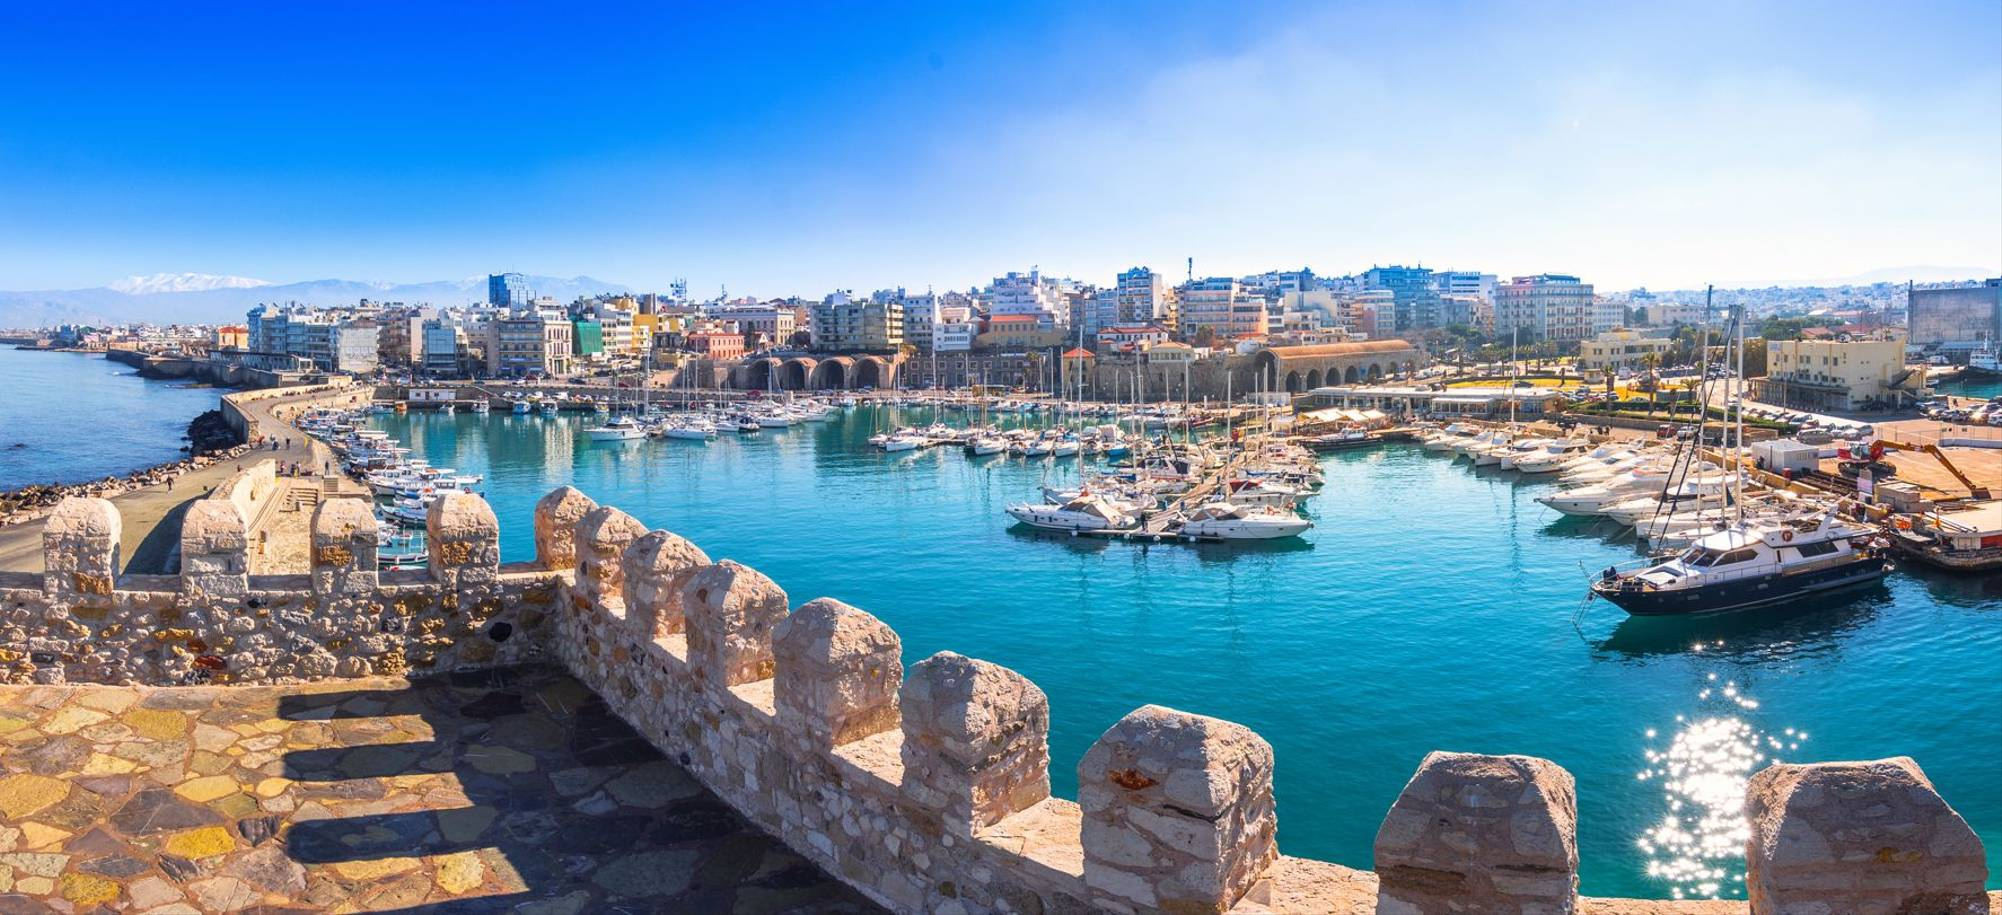 Heraklion - Itinerary Desktop .jpg